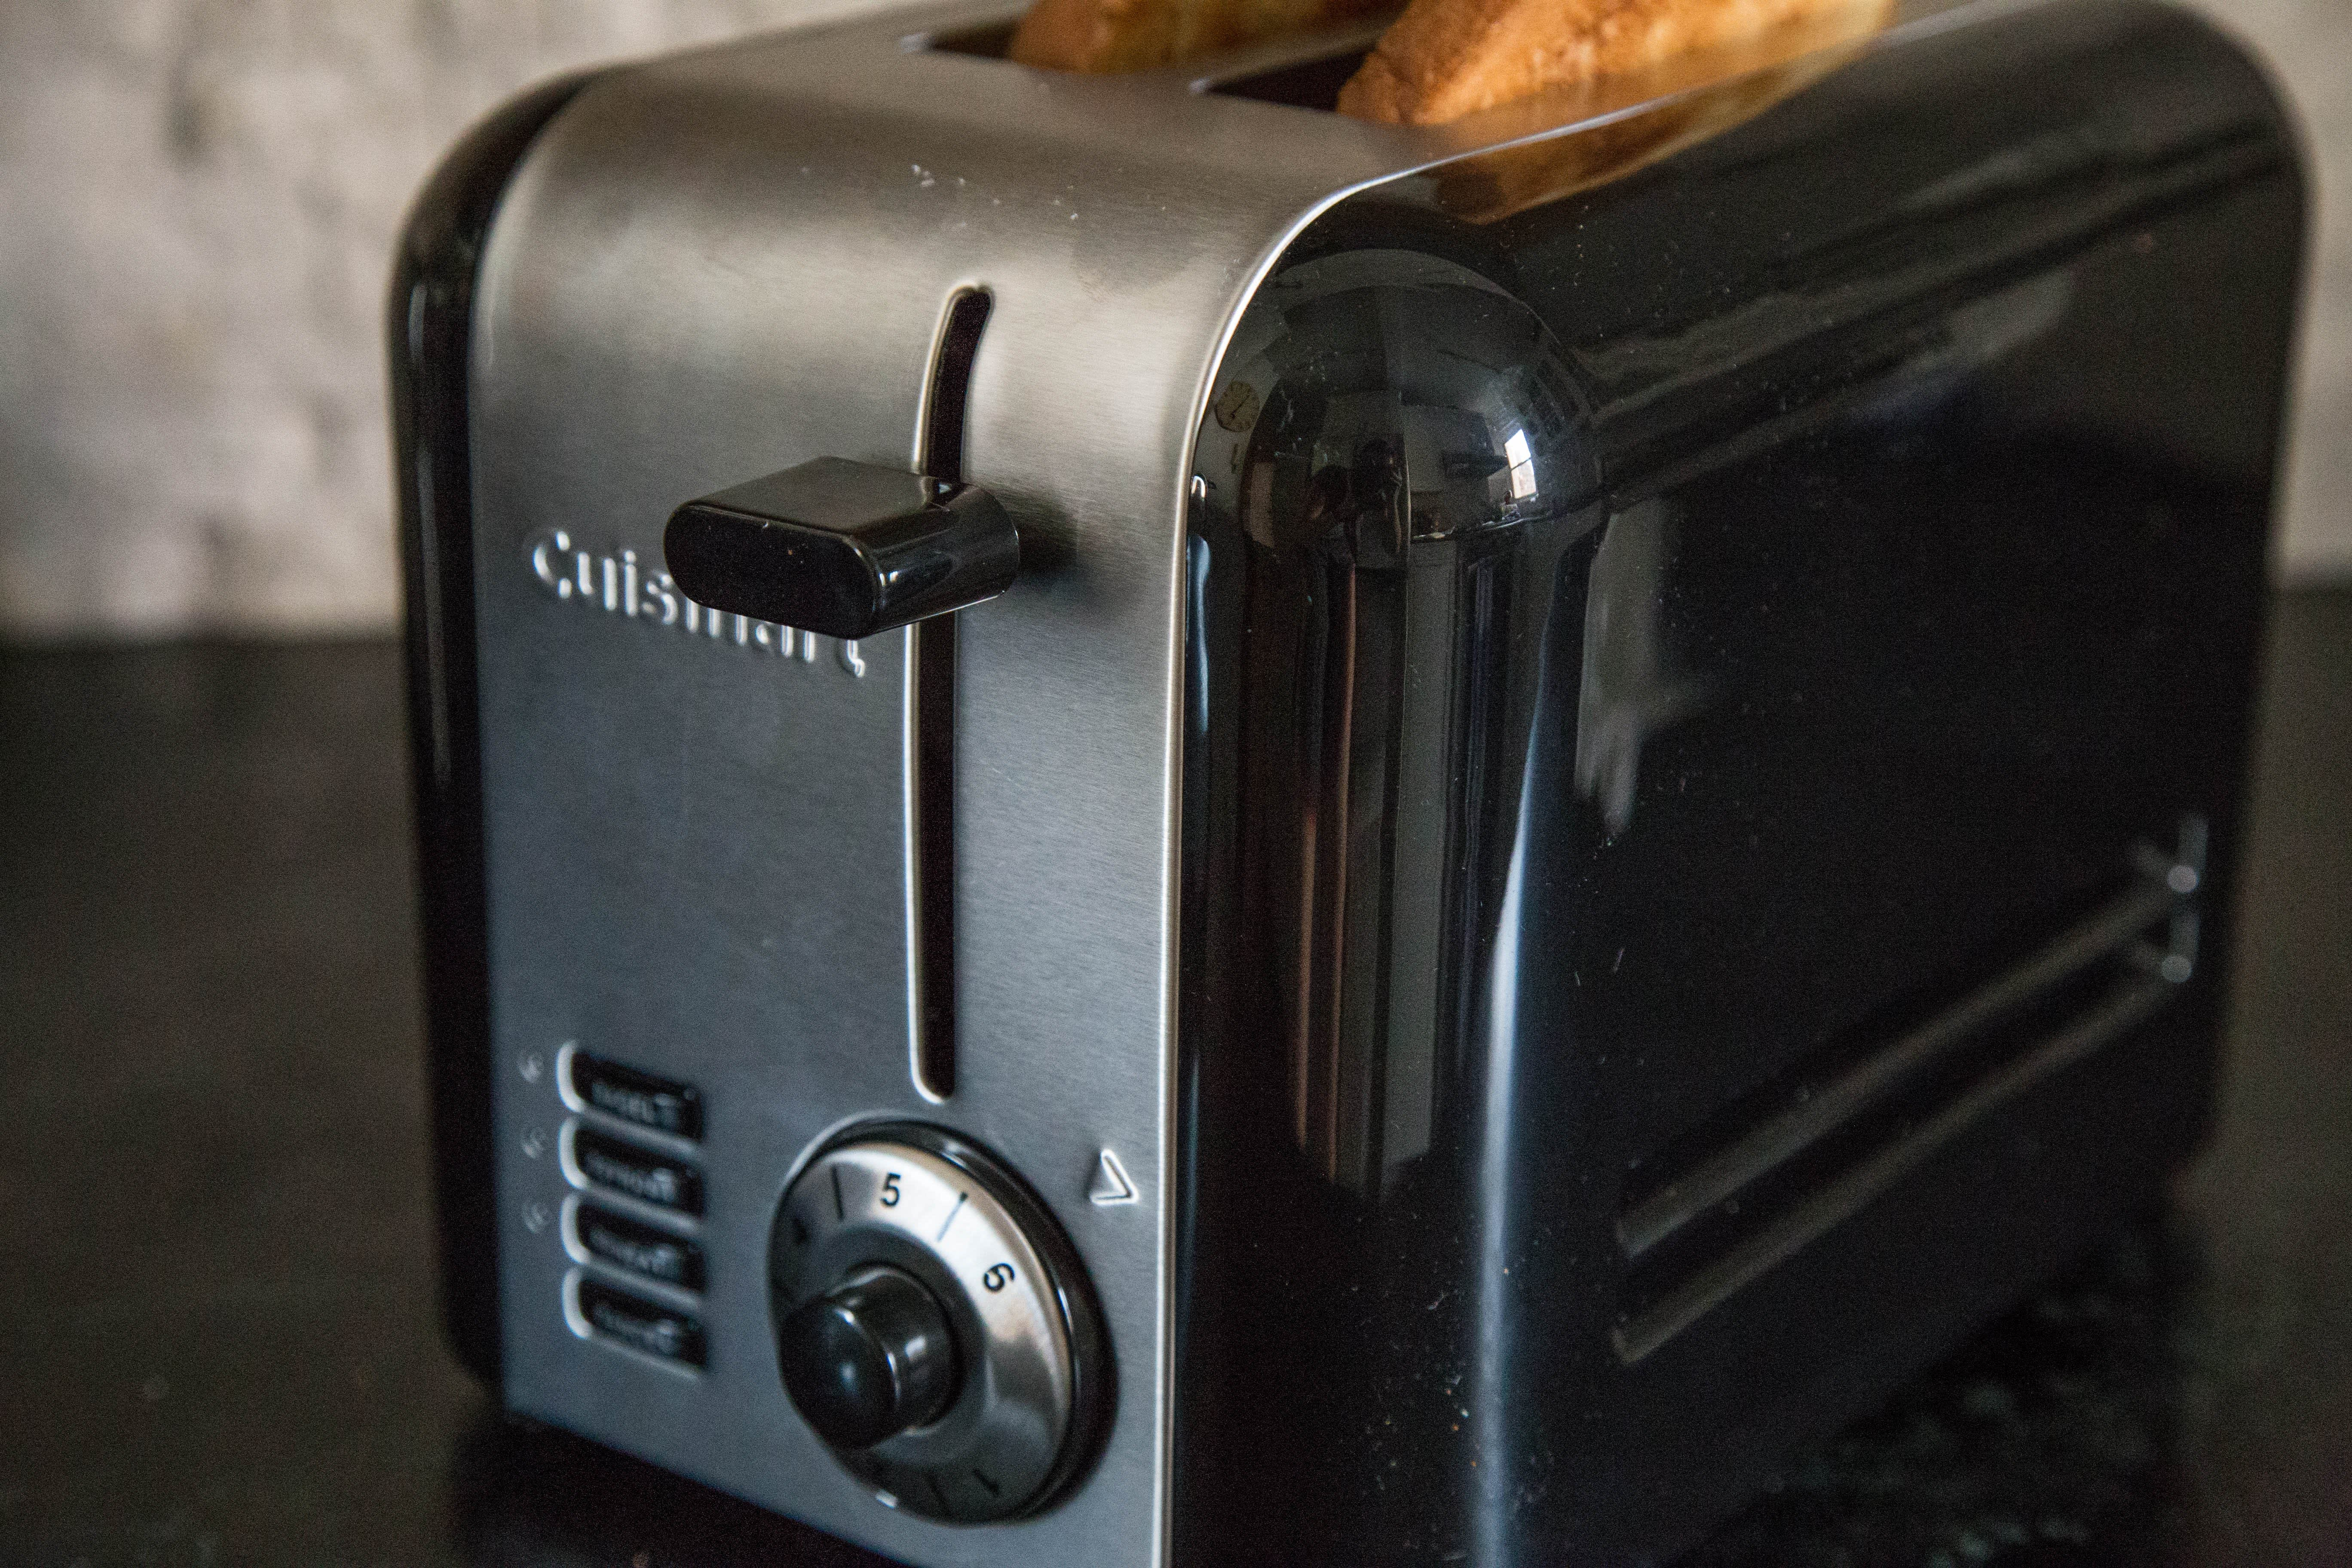 The Cuisinart Toaster Is Sleek, Compact & Stays Cool to the Touch: gallery image 1